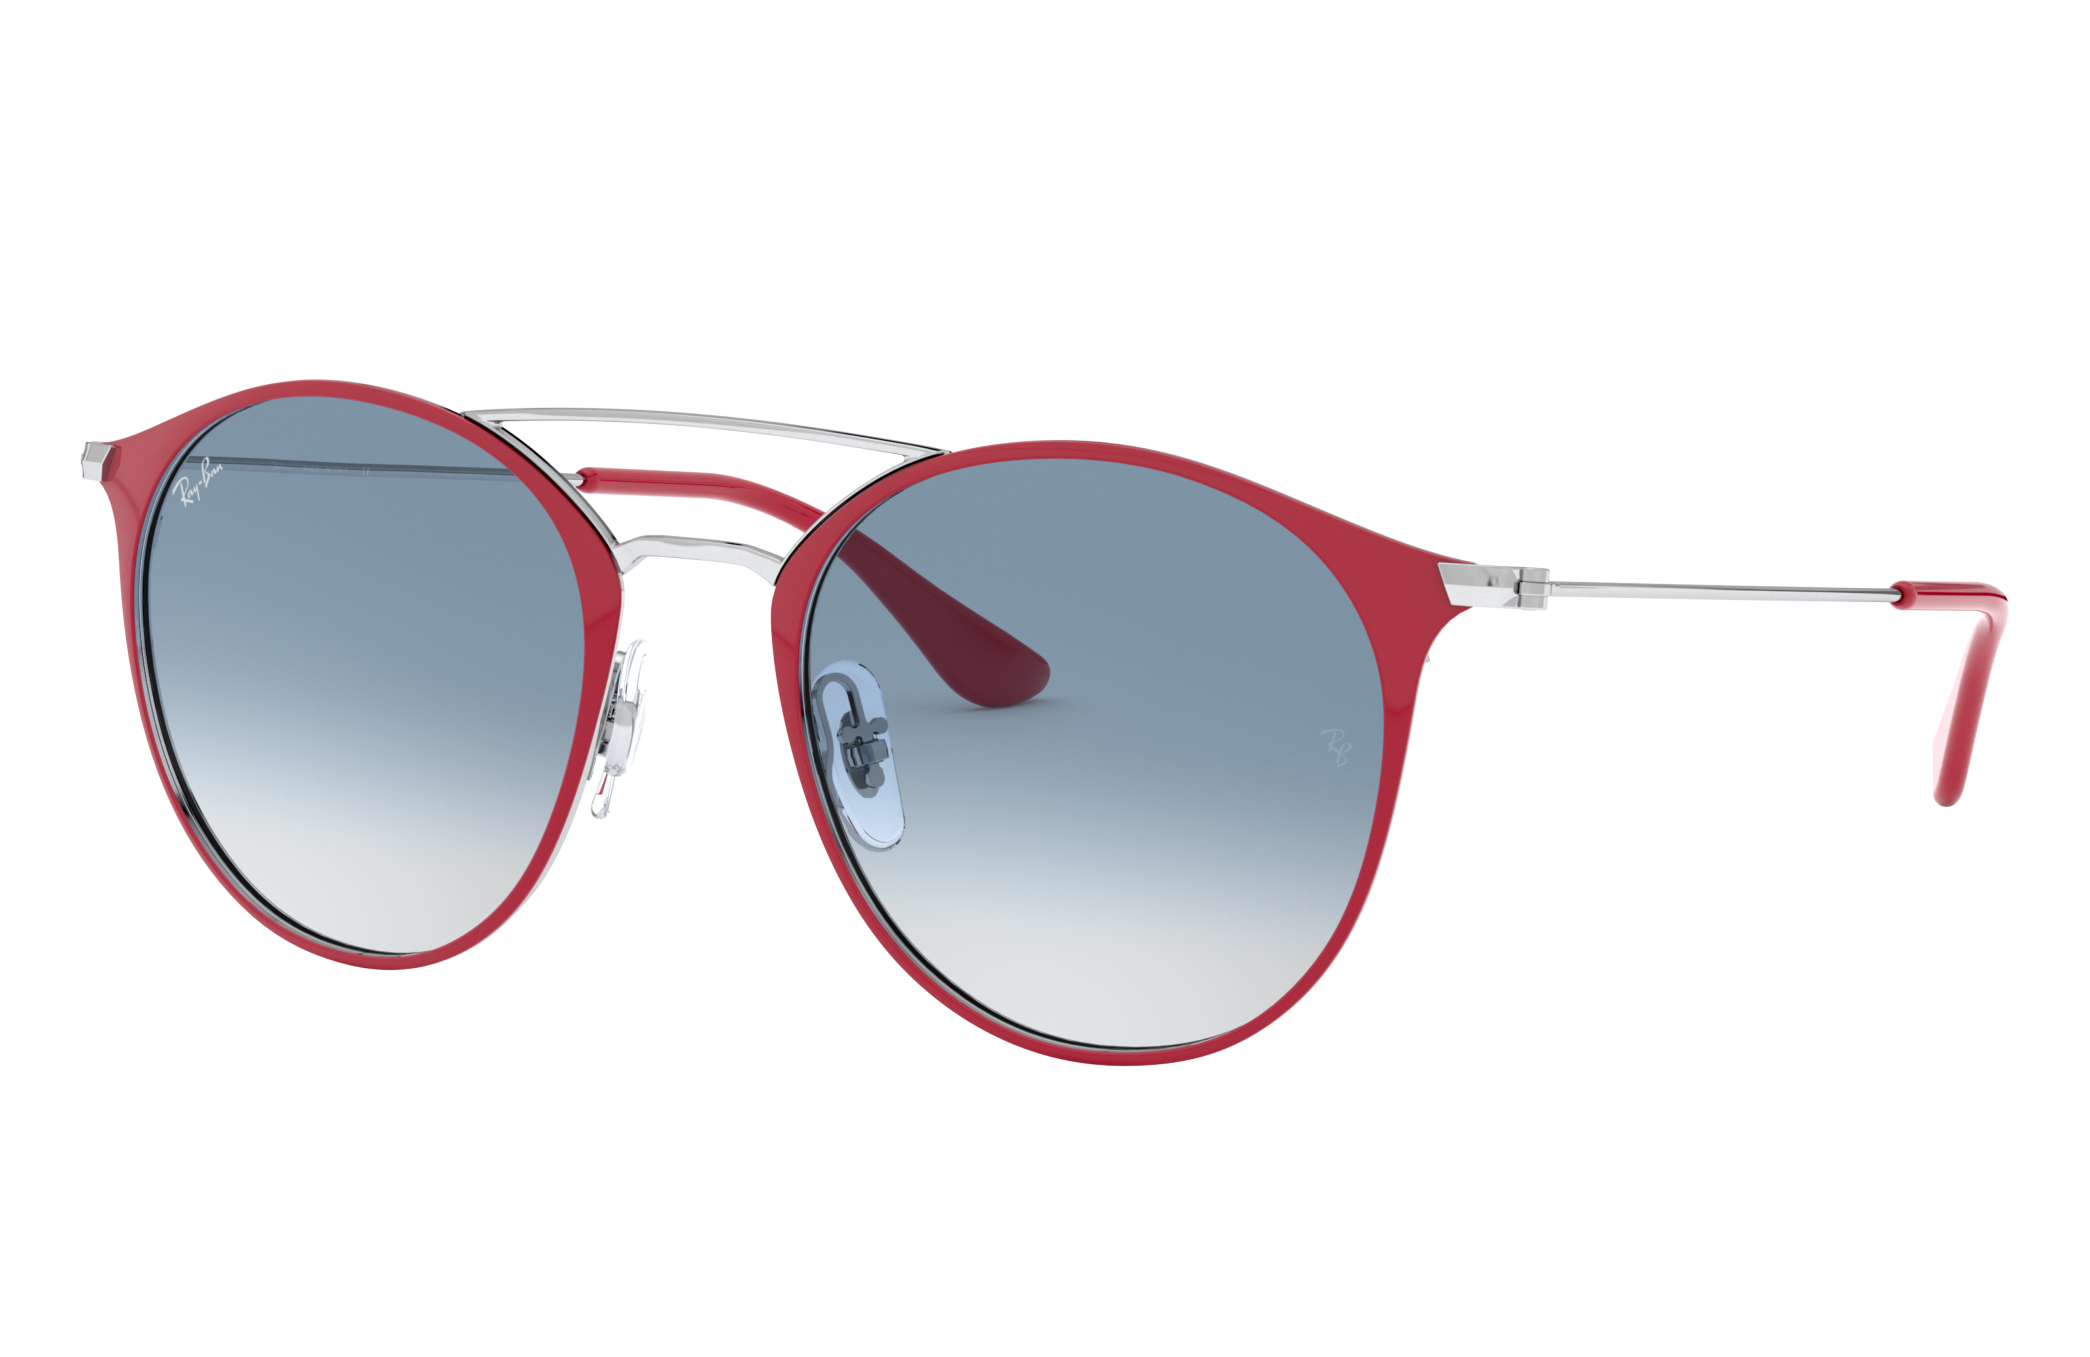 Ray-Ban Rb3546 Silver, Blue Lenses - RB3546